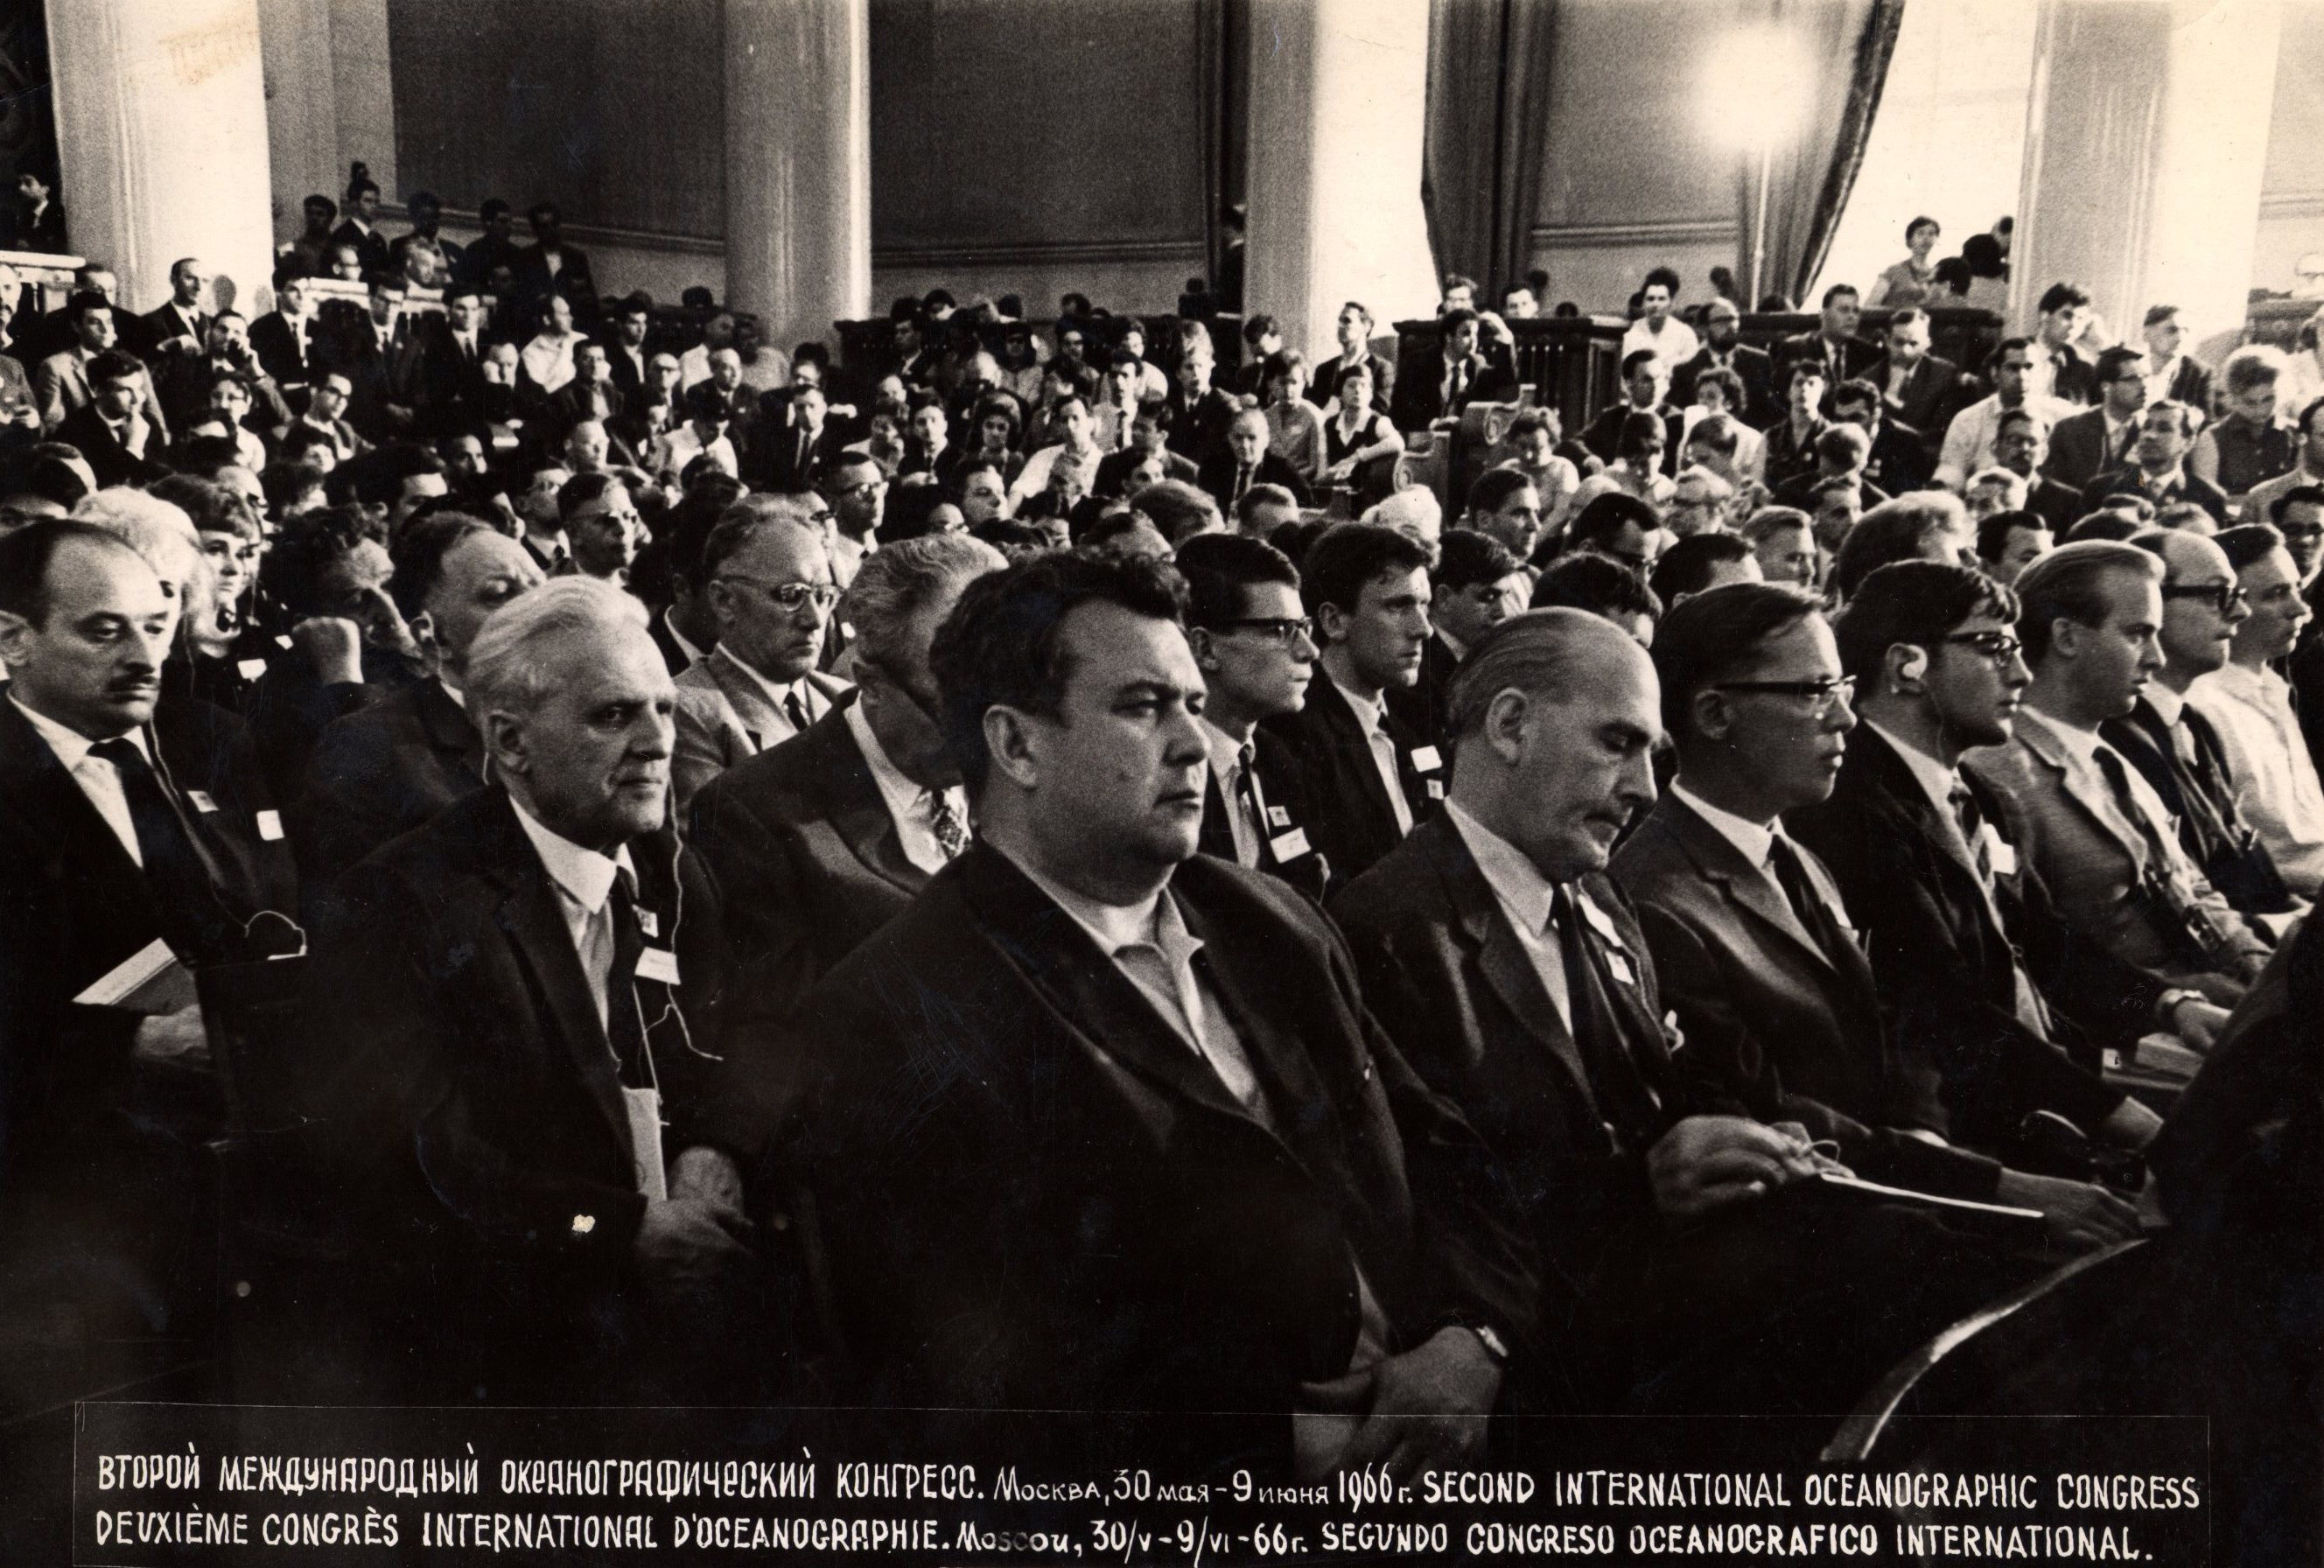 Bob Dickson, fourth in on the front row, at the Second International Oceanographic Congress, Moscow, 1966